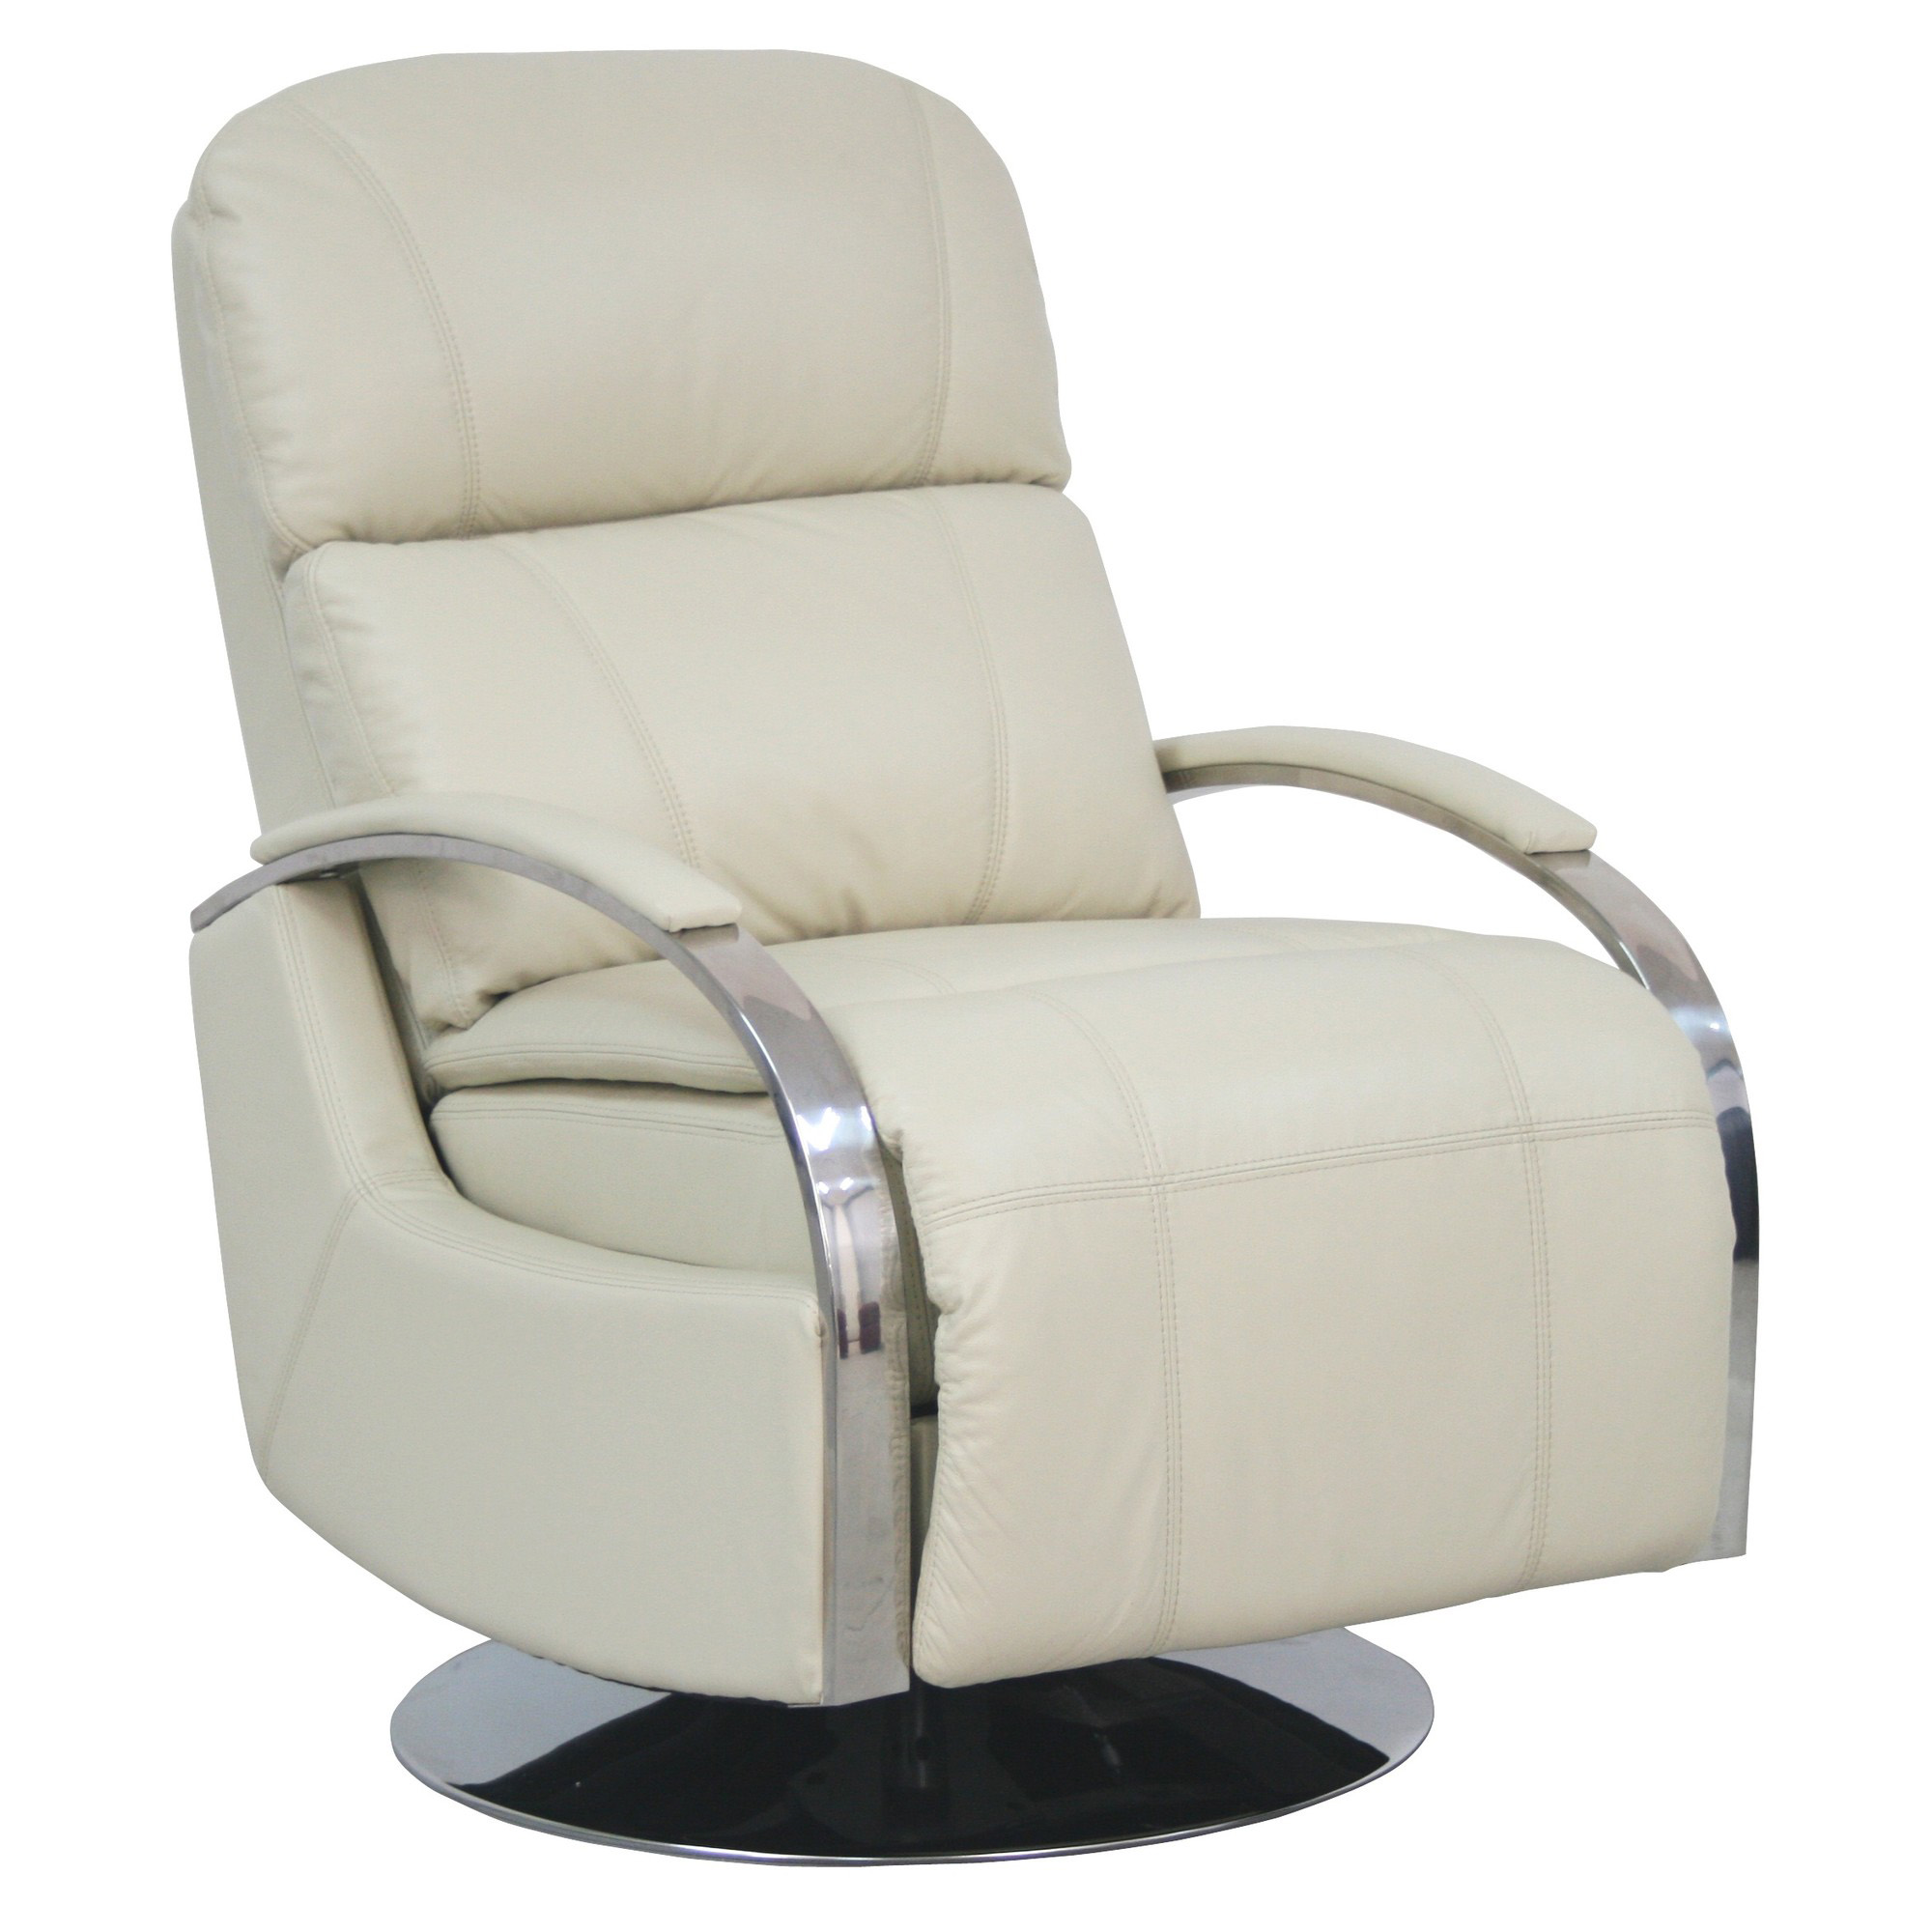 Barcalounger Regal II Leather Recliner Chair - Leather Recliner ...